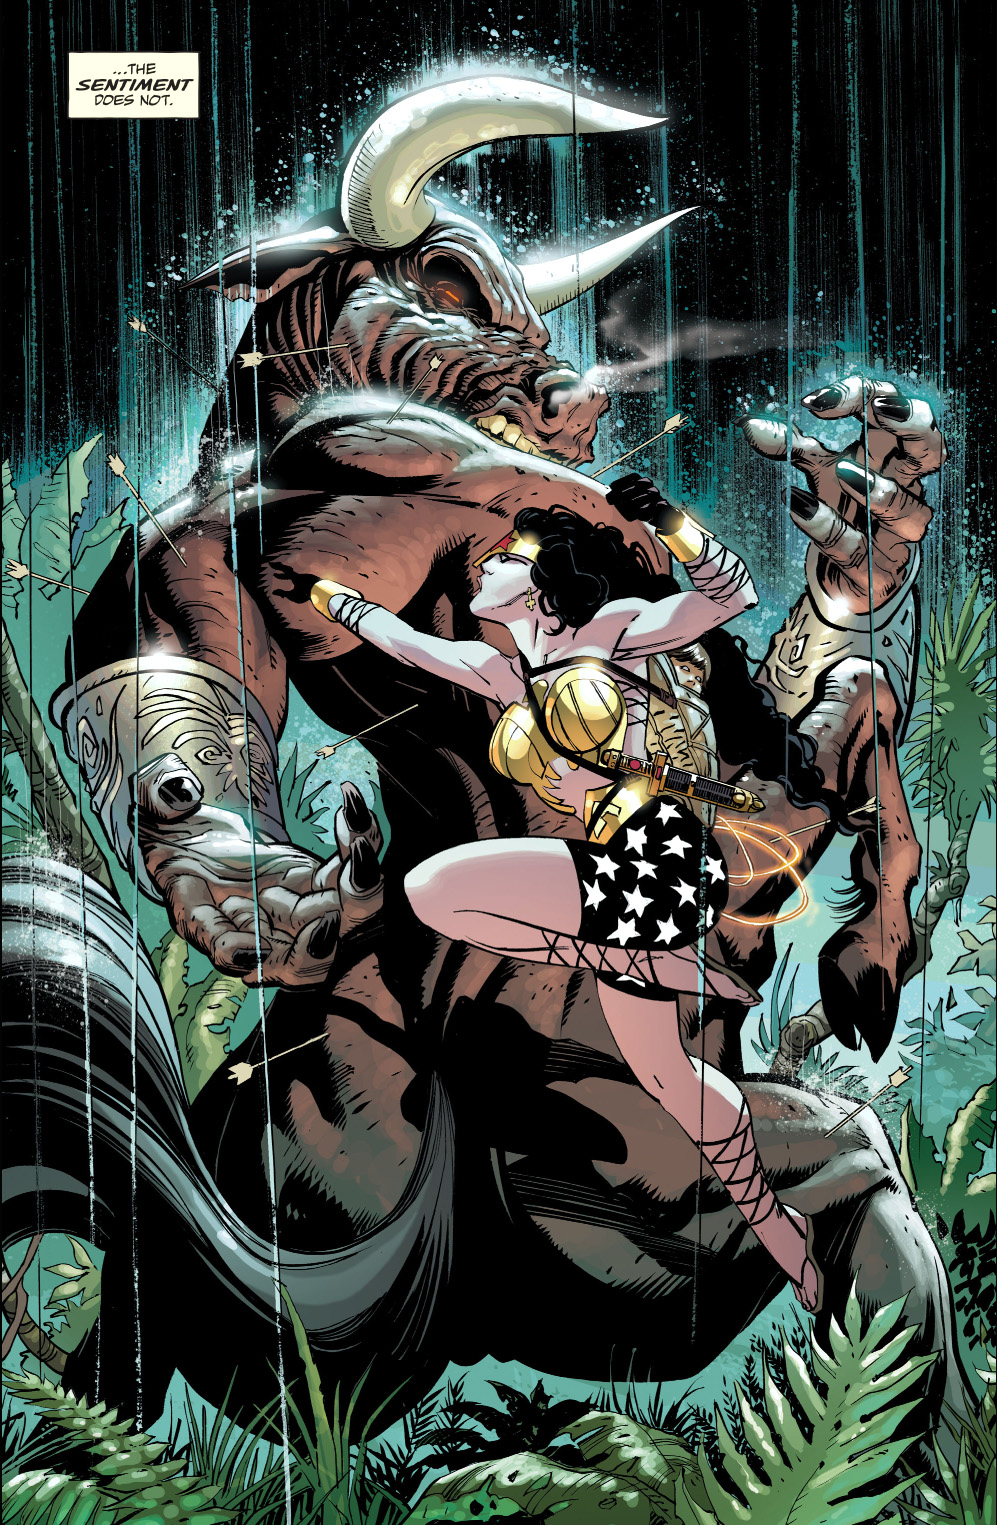 Wonder Woman Vs Minotaur The Master Race Comicnewbies